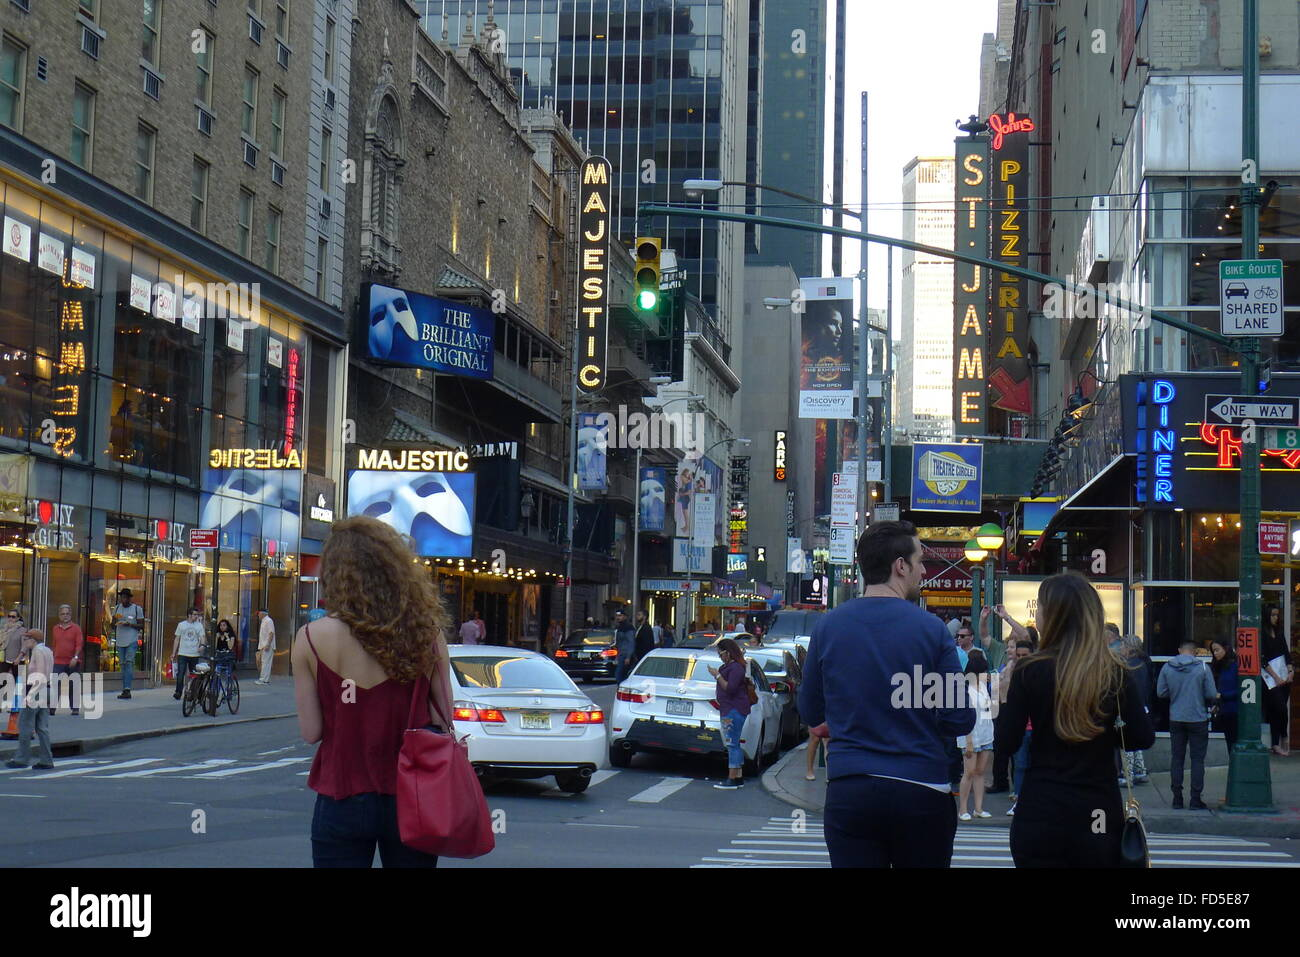 44th Street NYC Theater District - Stock Image